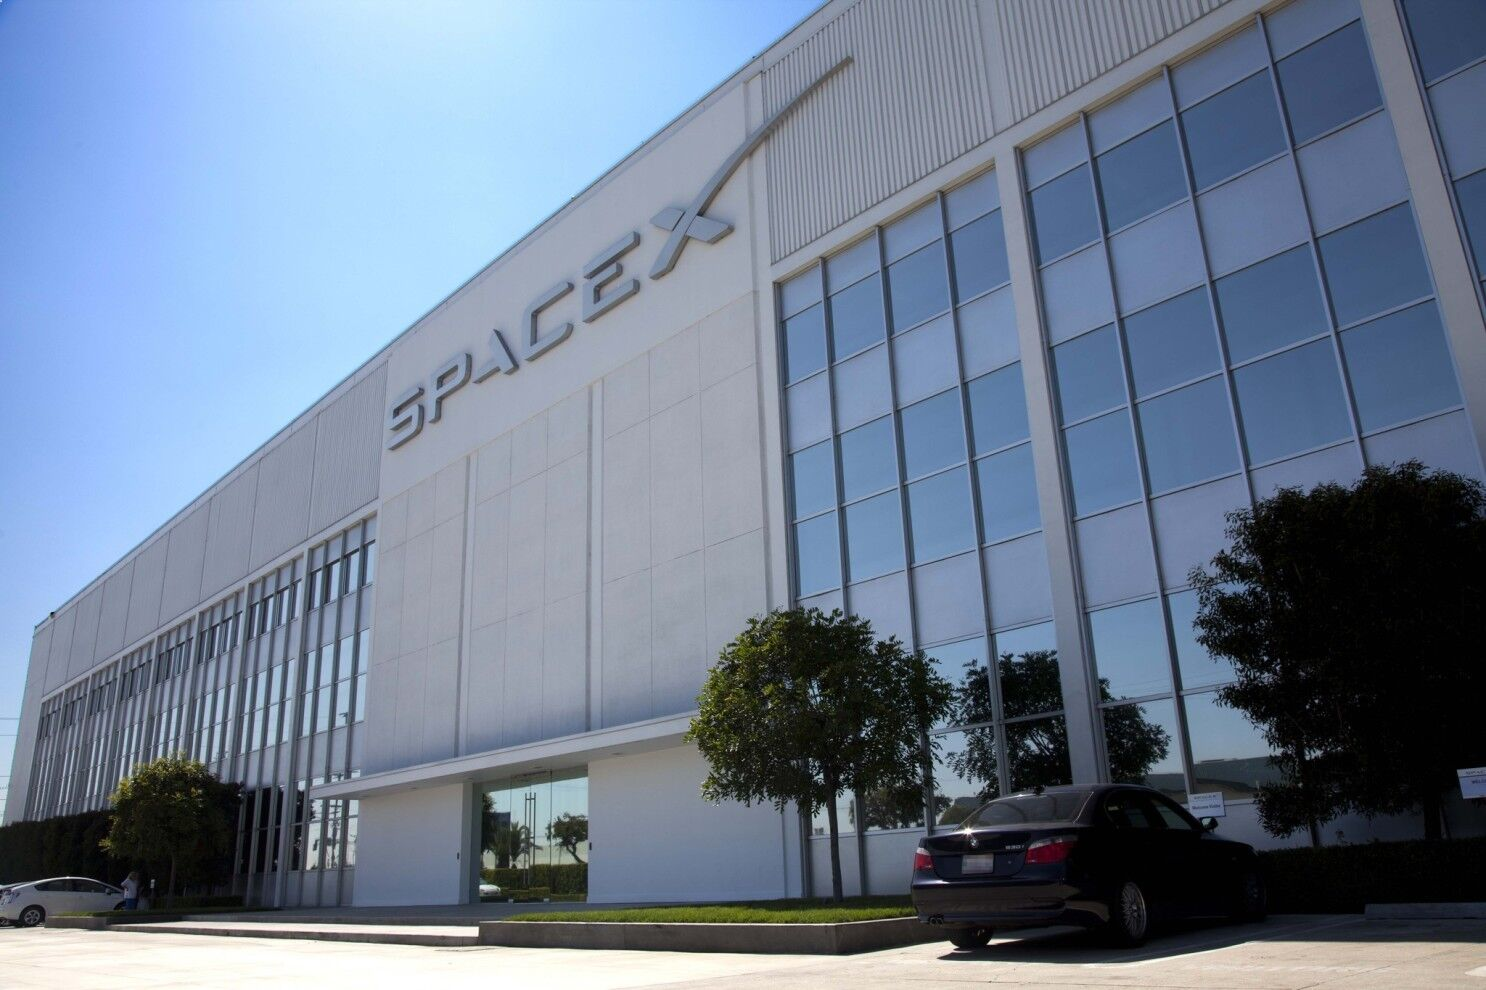 SpaceX Office